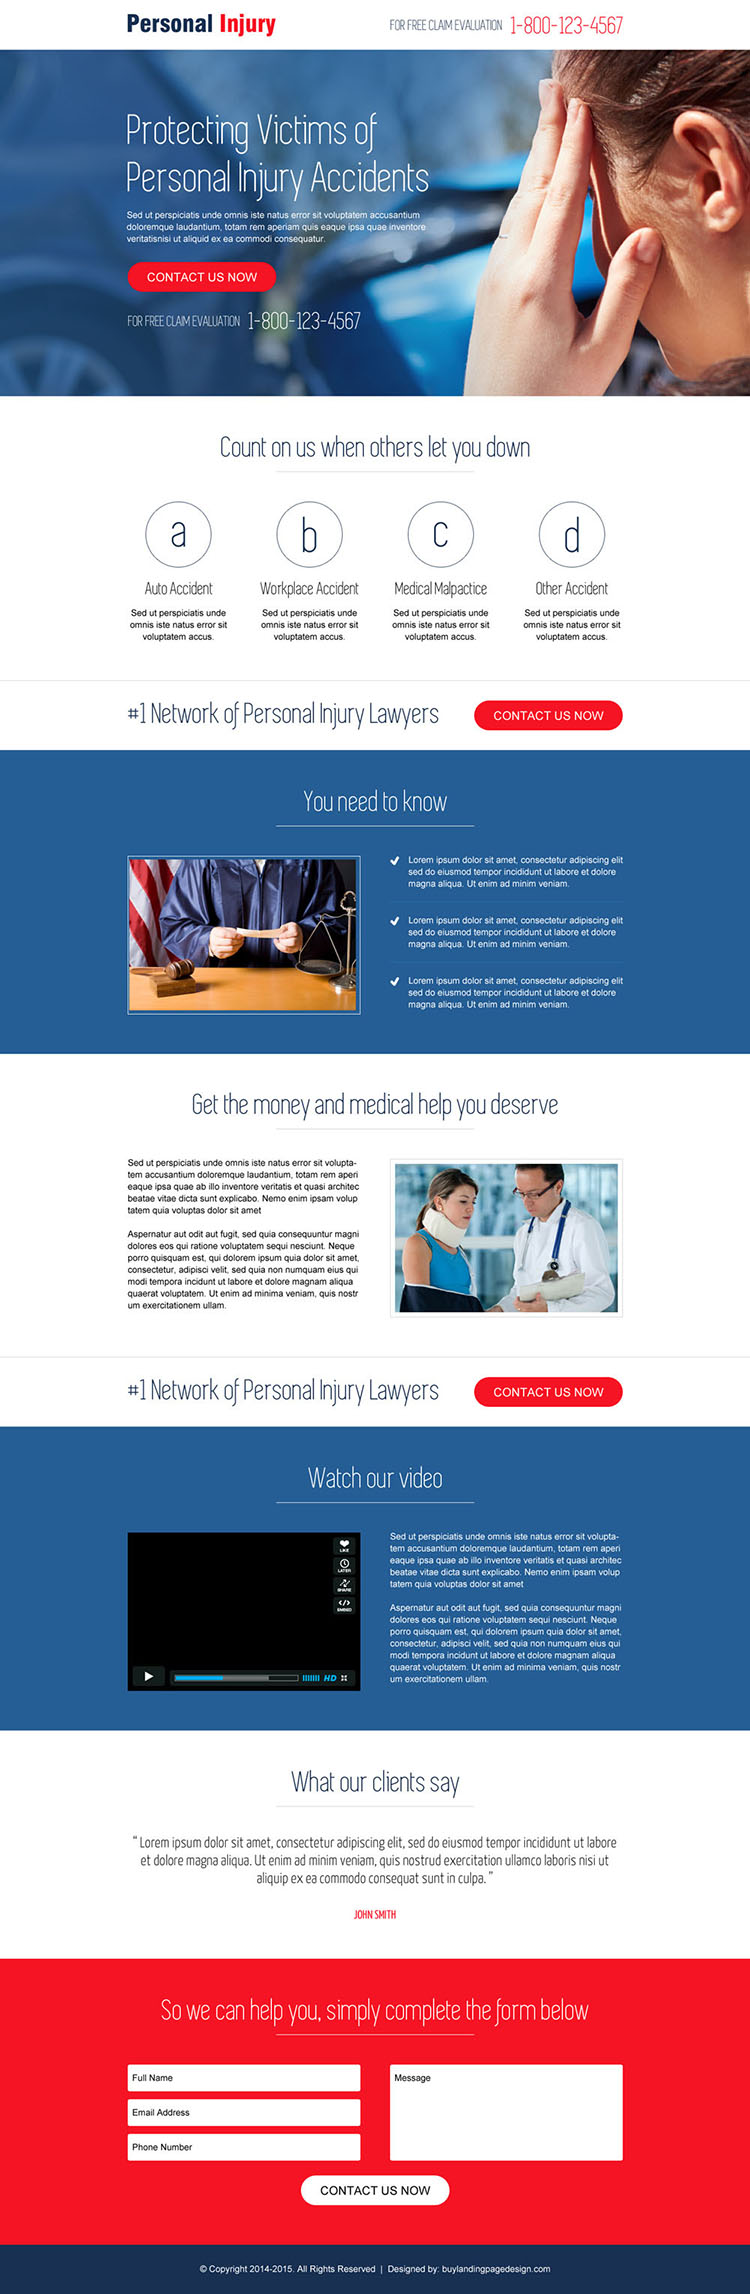 personal injury responsive landing page design template